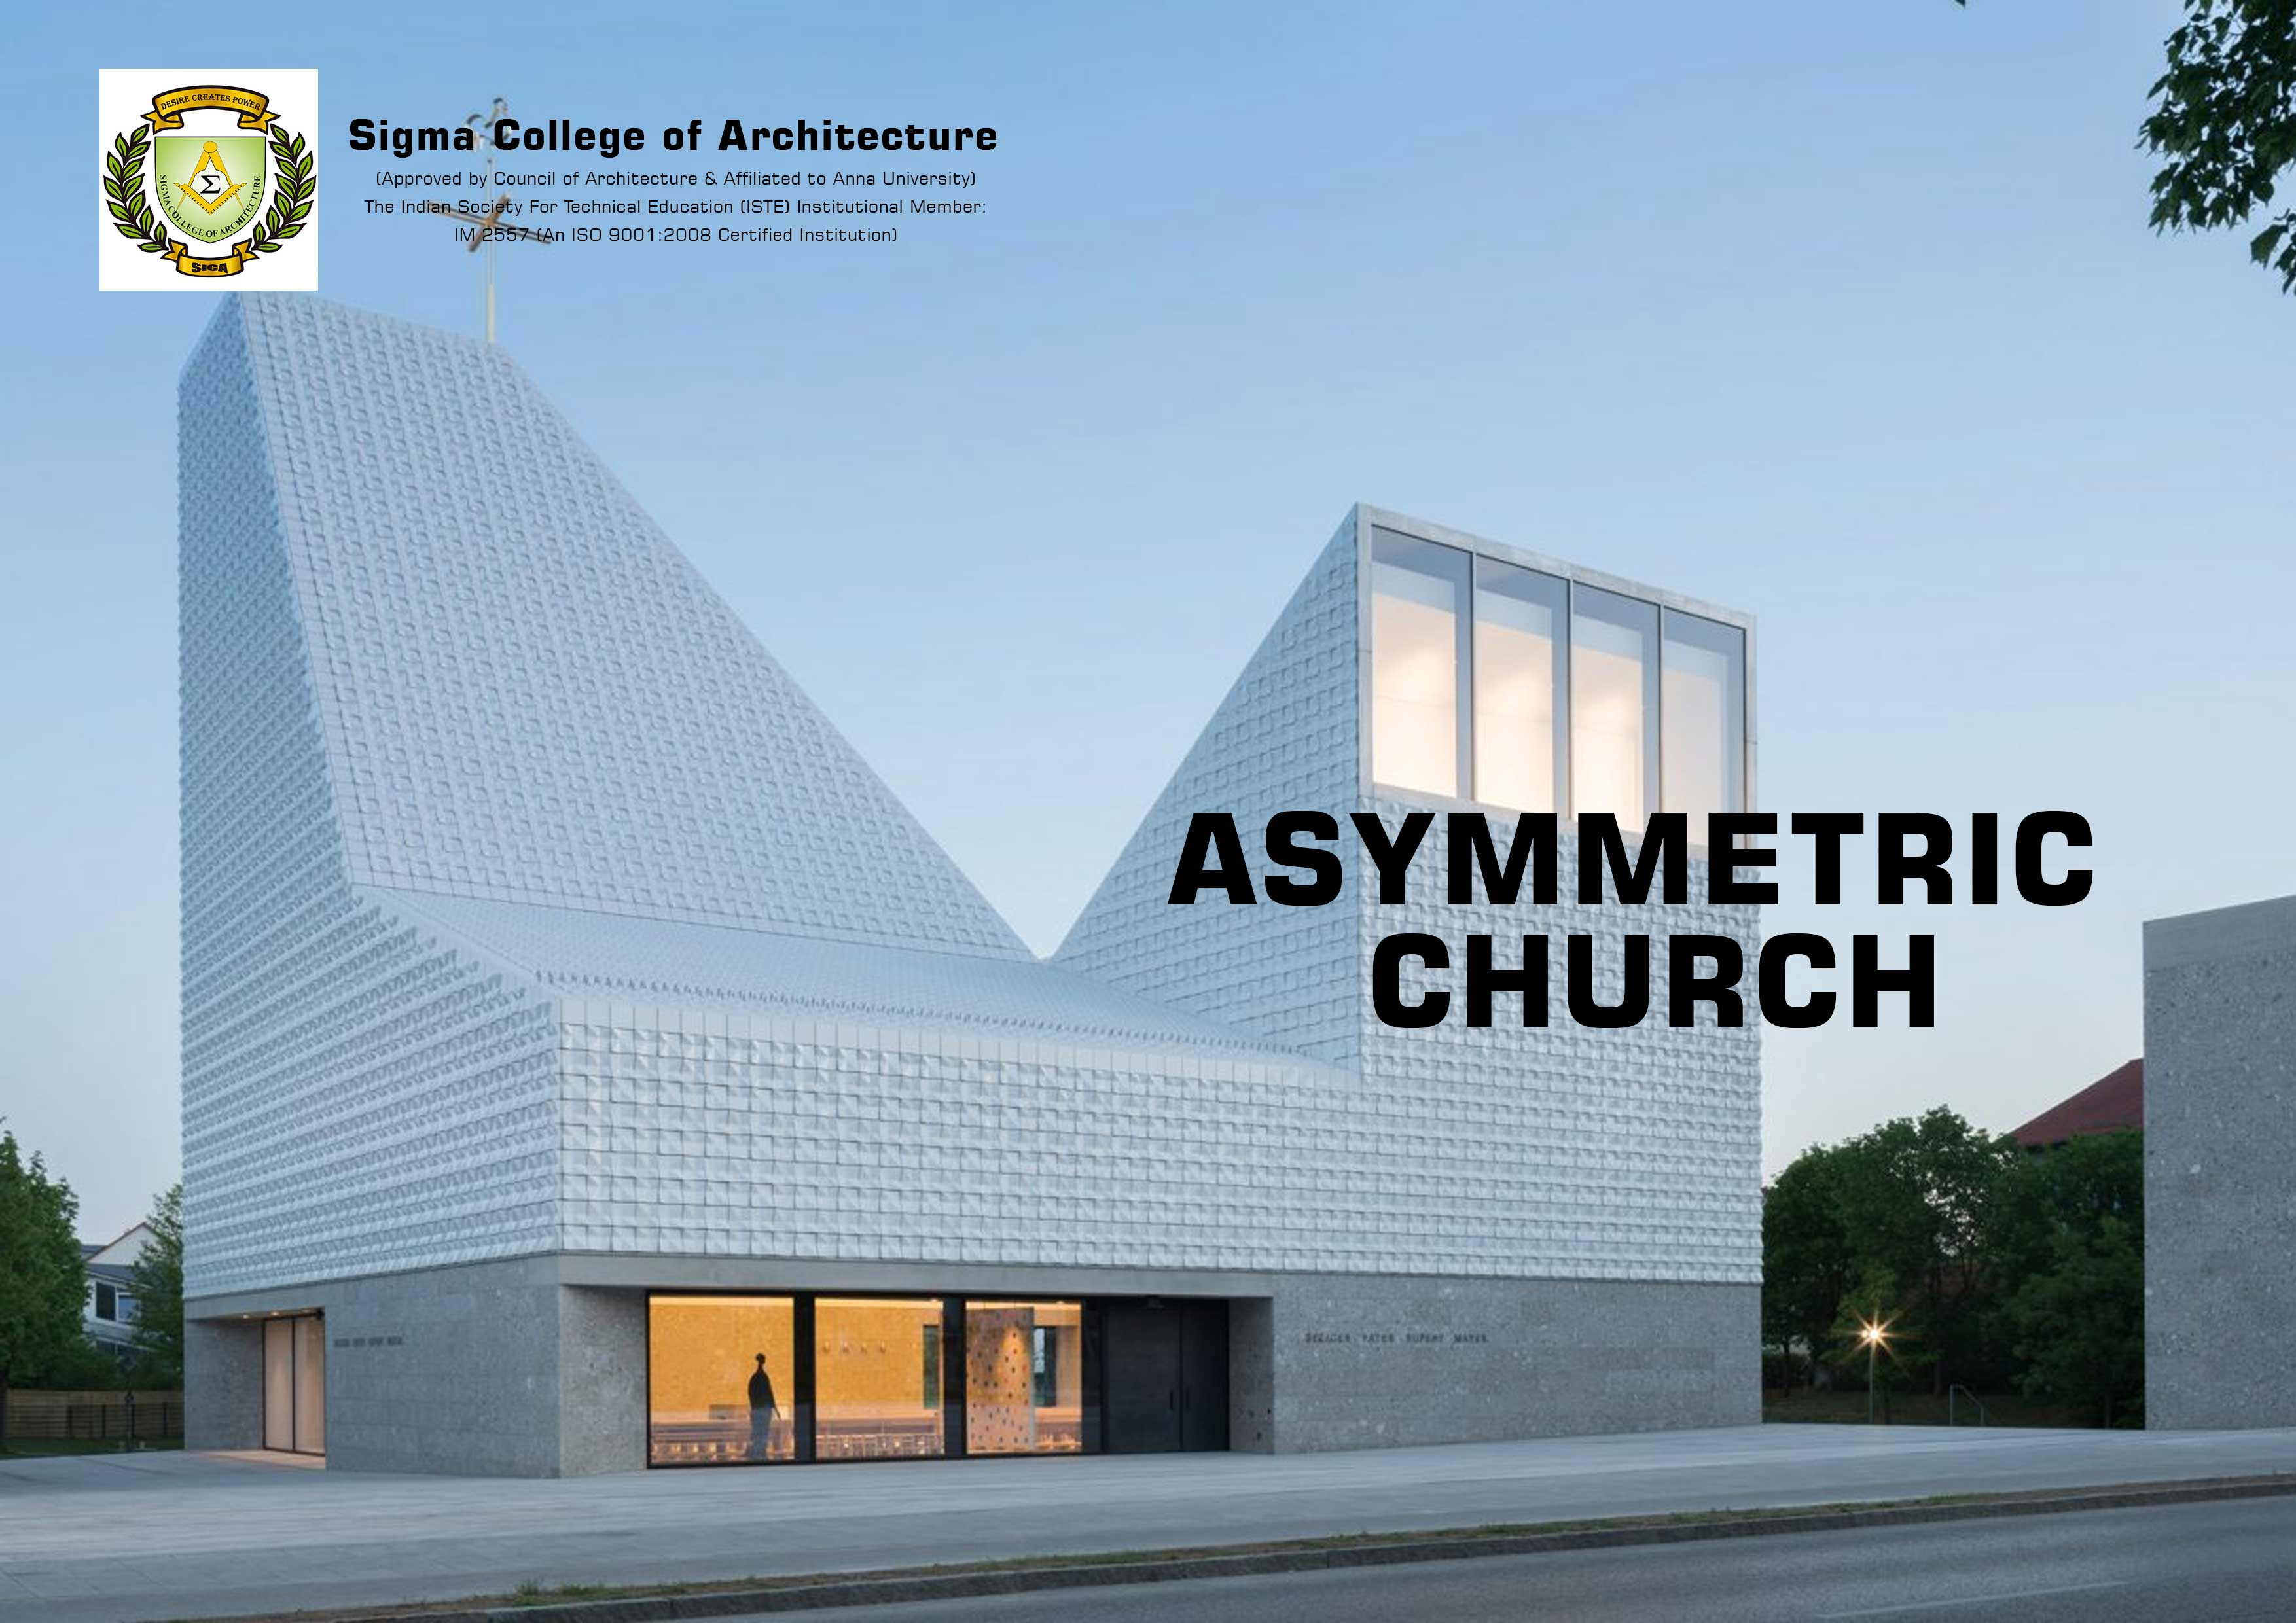 Asymmetric Church